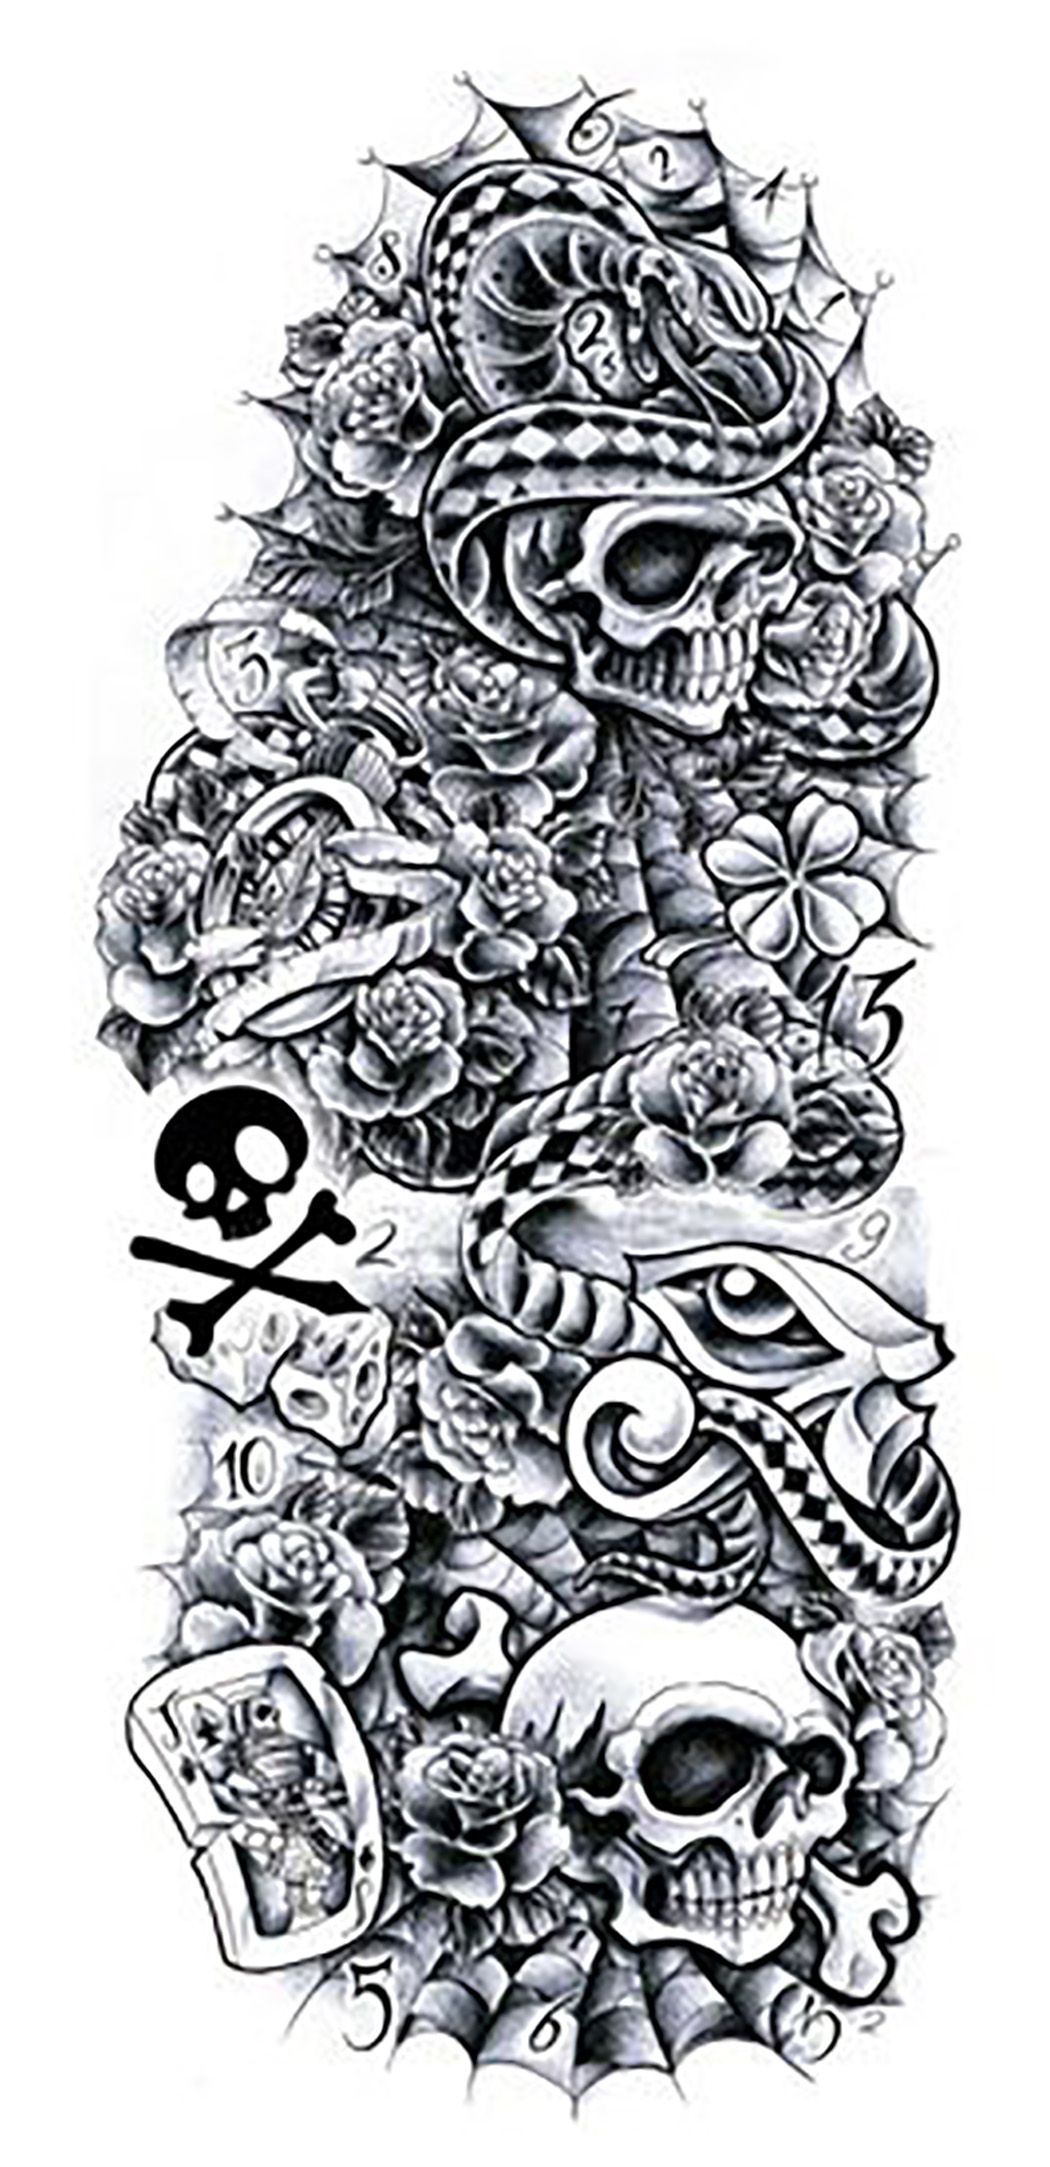 Tattoo Png Download 2020 In 2020 Arm Sleeve Tattoos Full Sleeve Tattoos Best Sleeve Tattoos